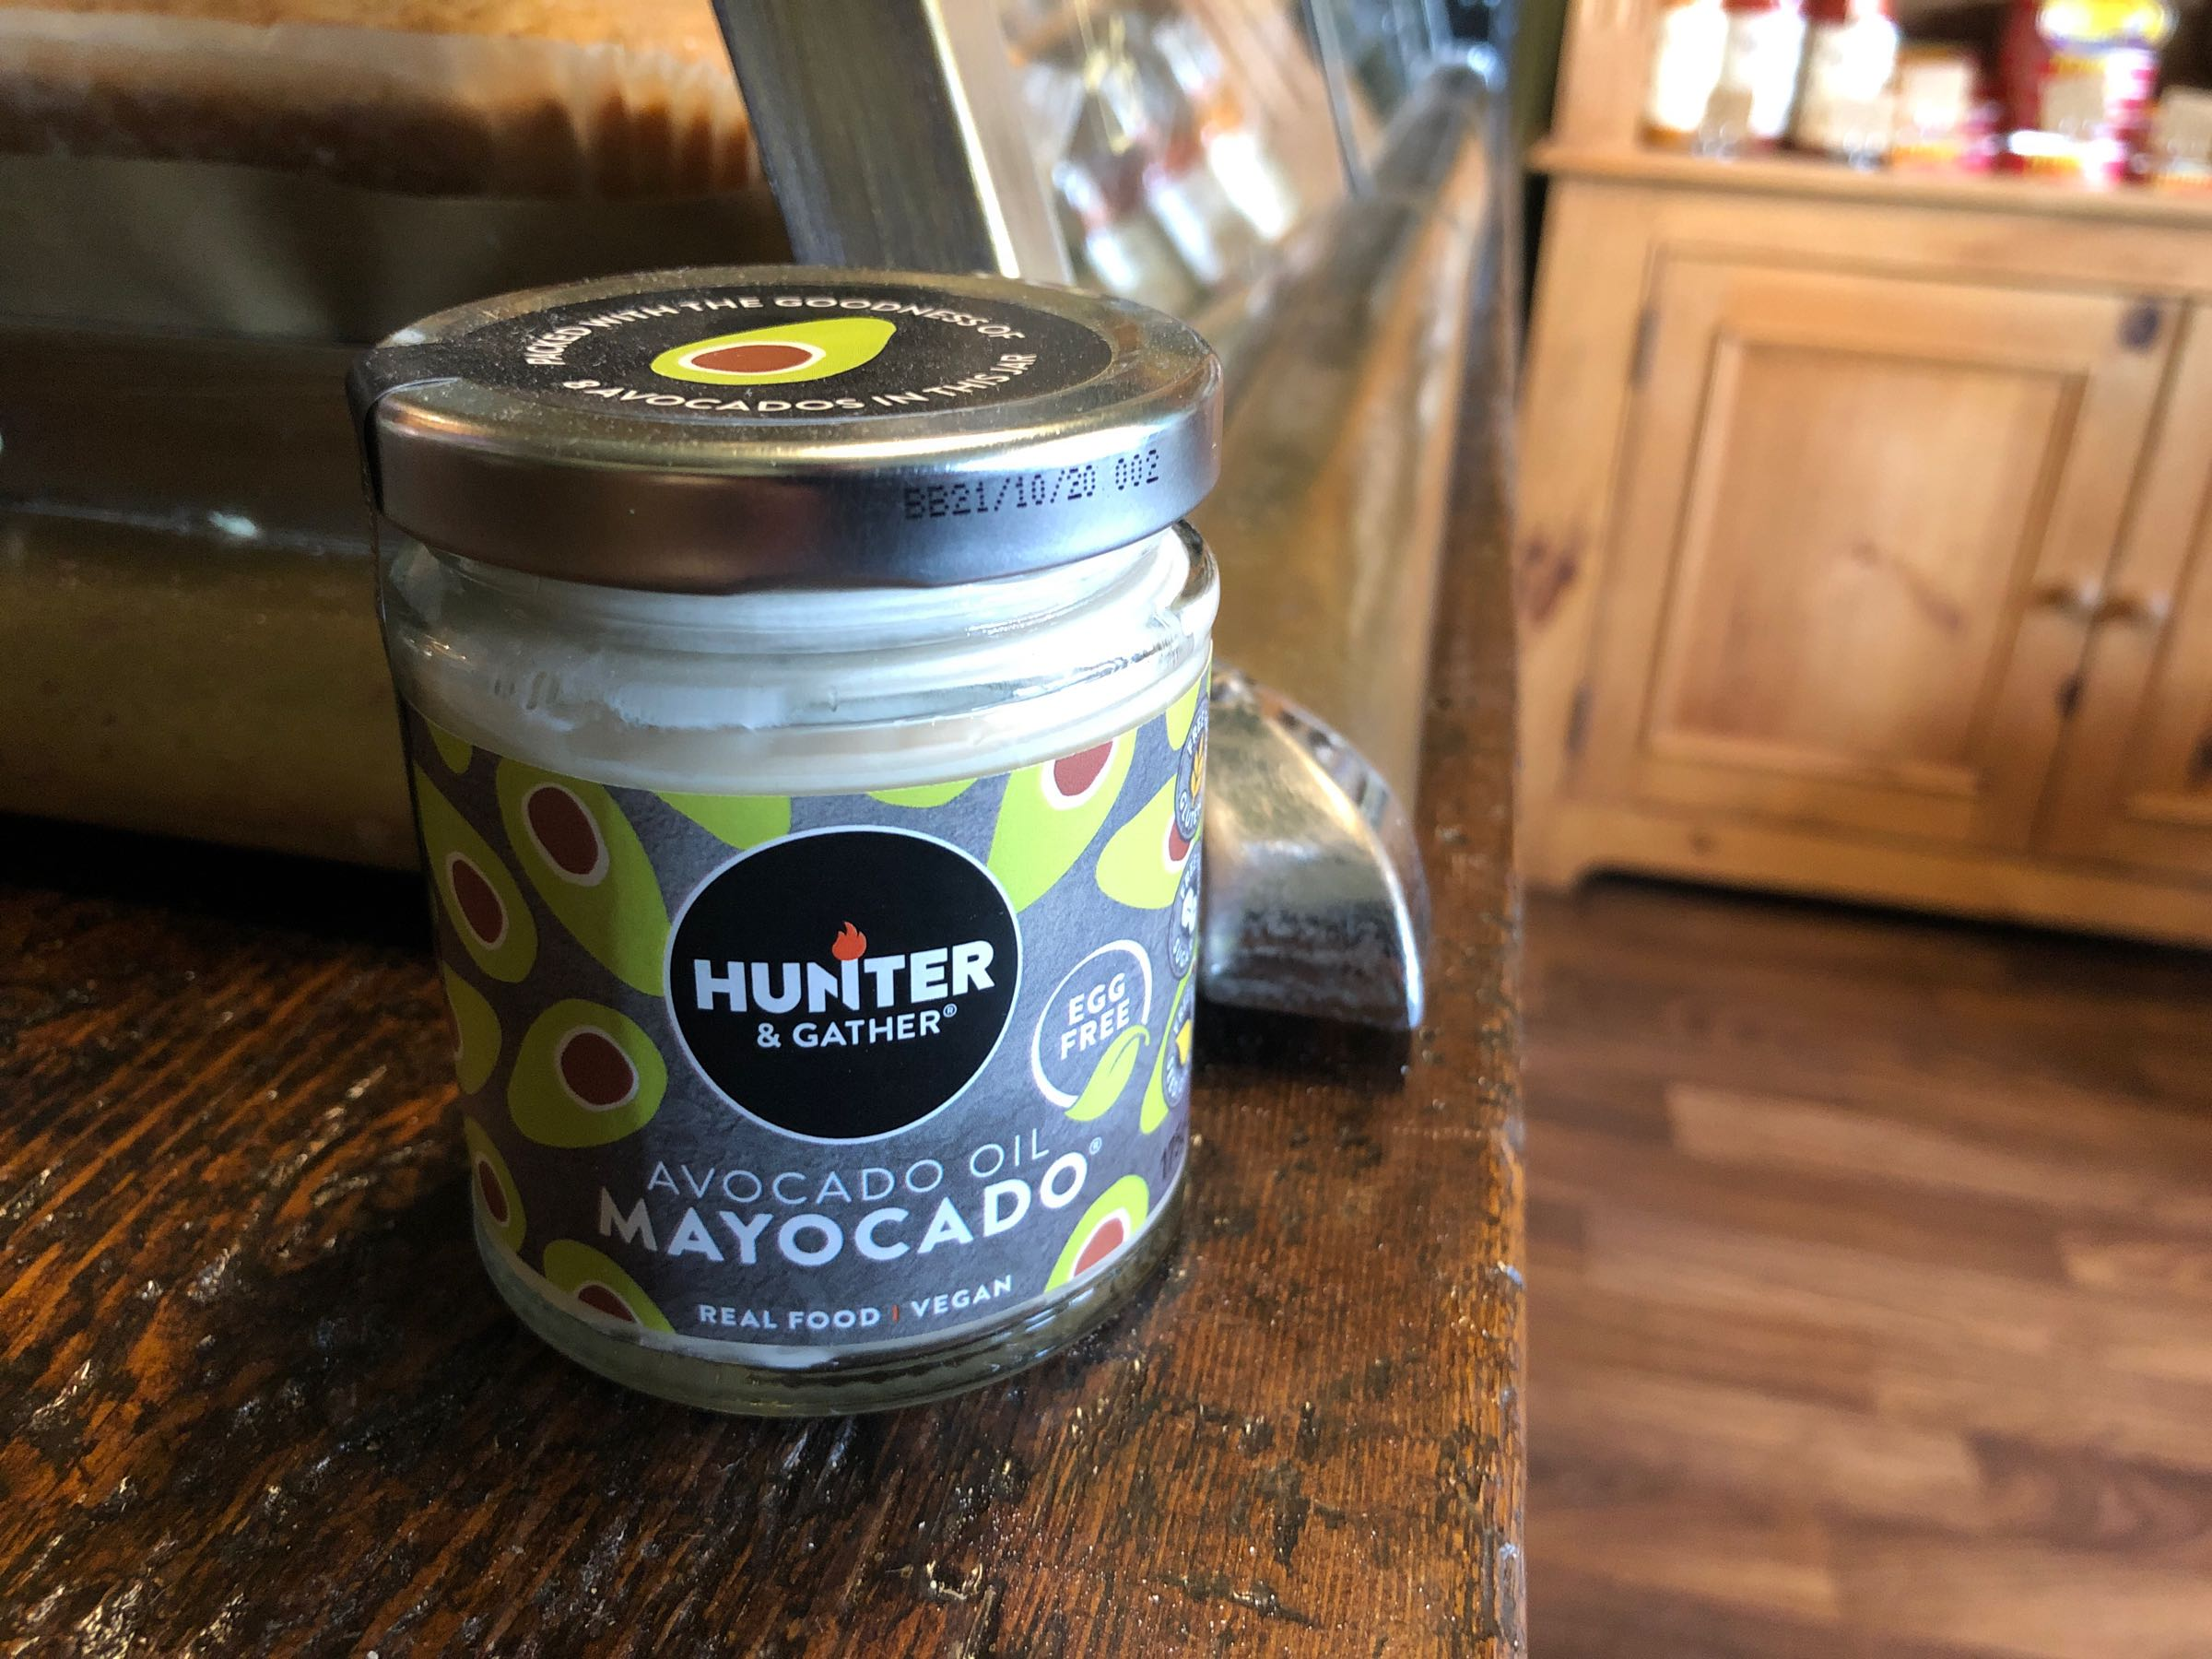 Hunter & Gather Mayocado Avocado Oil Egg Free Mayo 175g